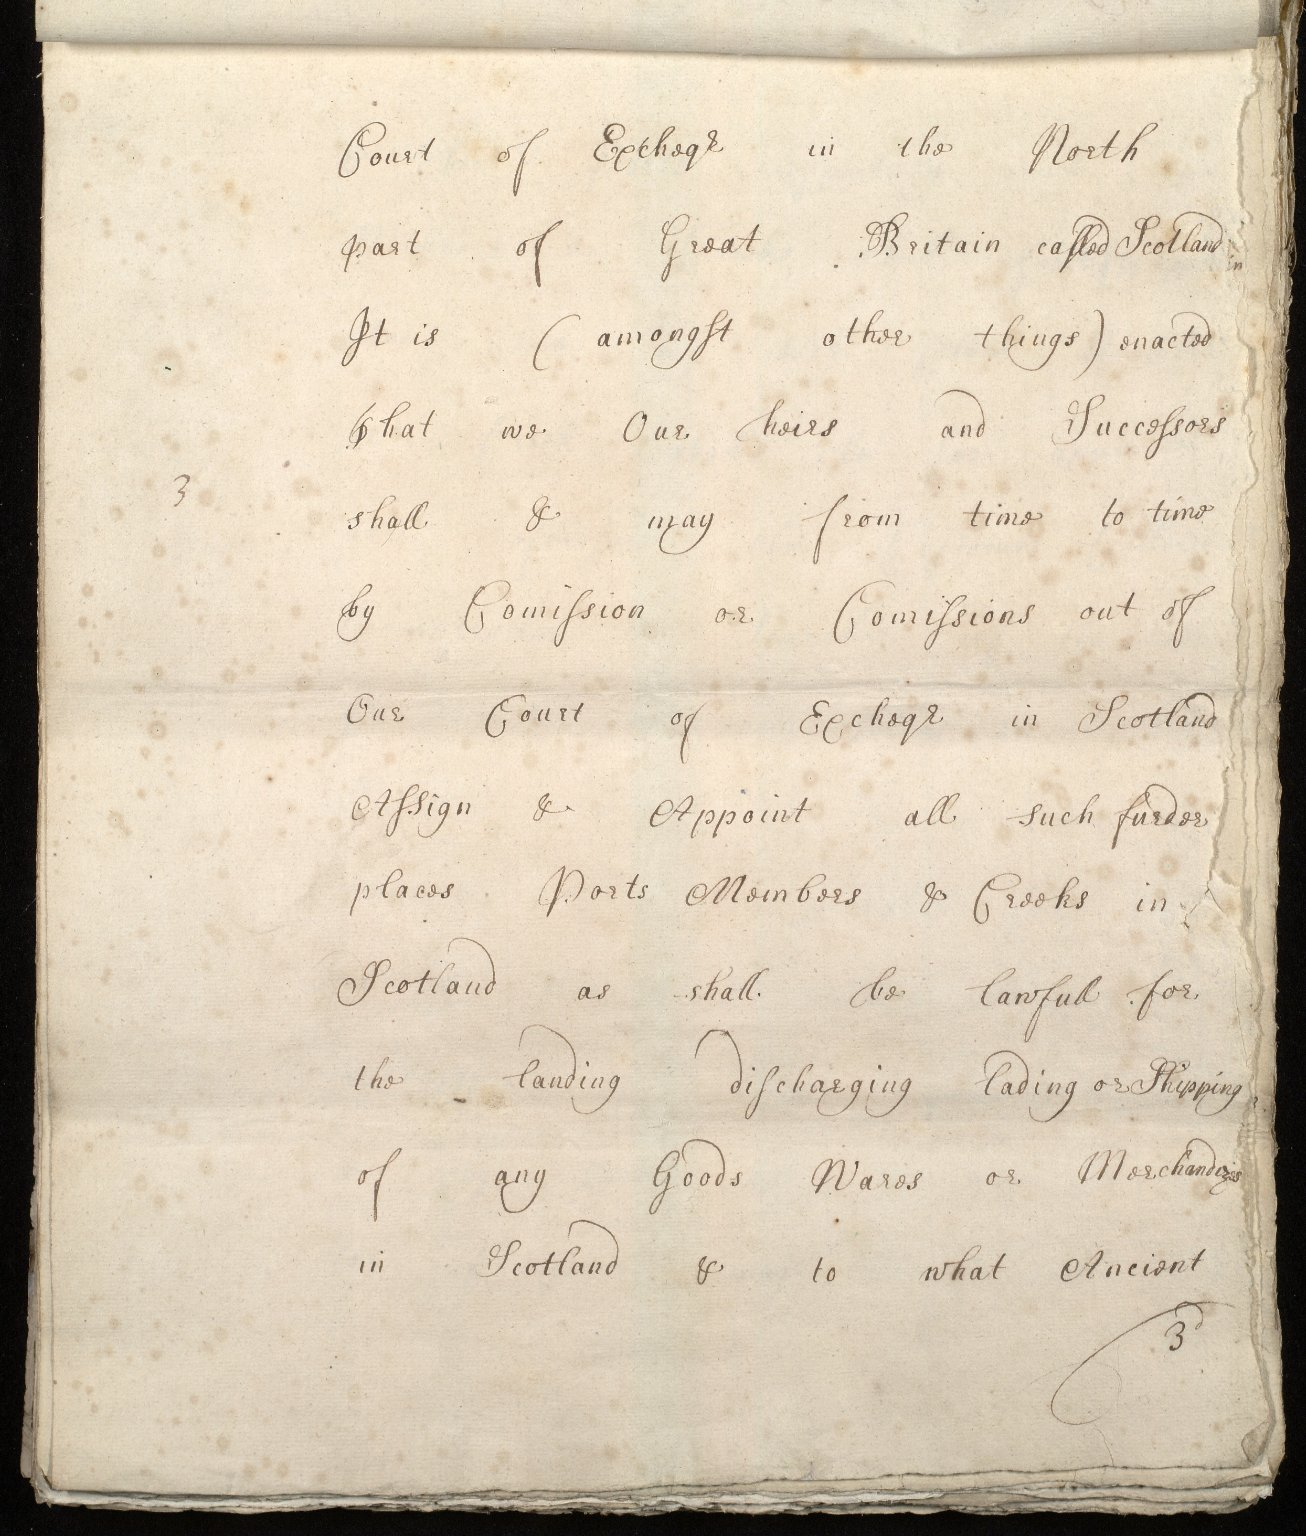 [Commission by Queen Anne to John Adair and others to appoint the town of Borrowstounness (Bo'ness) to be a port and to fix the bounds thereof] [03 of 39]